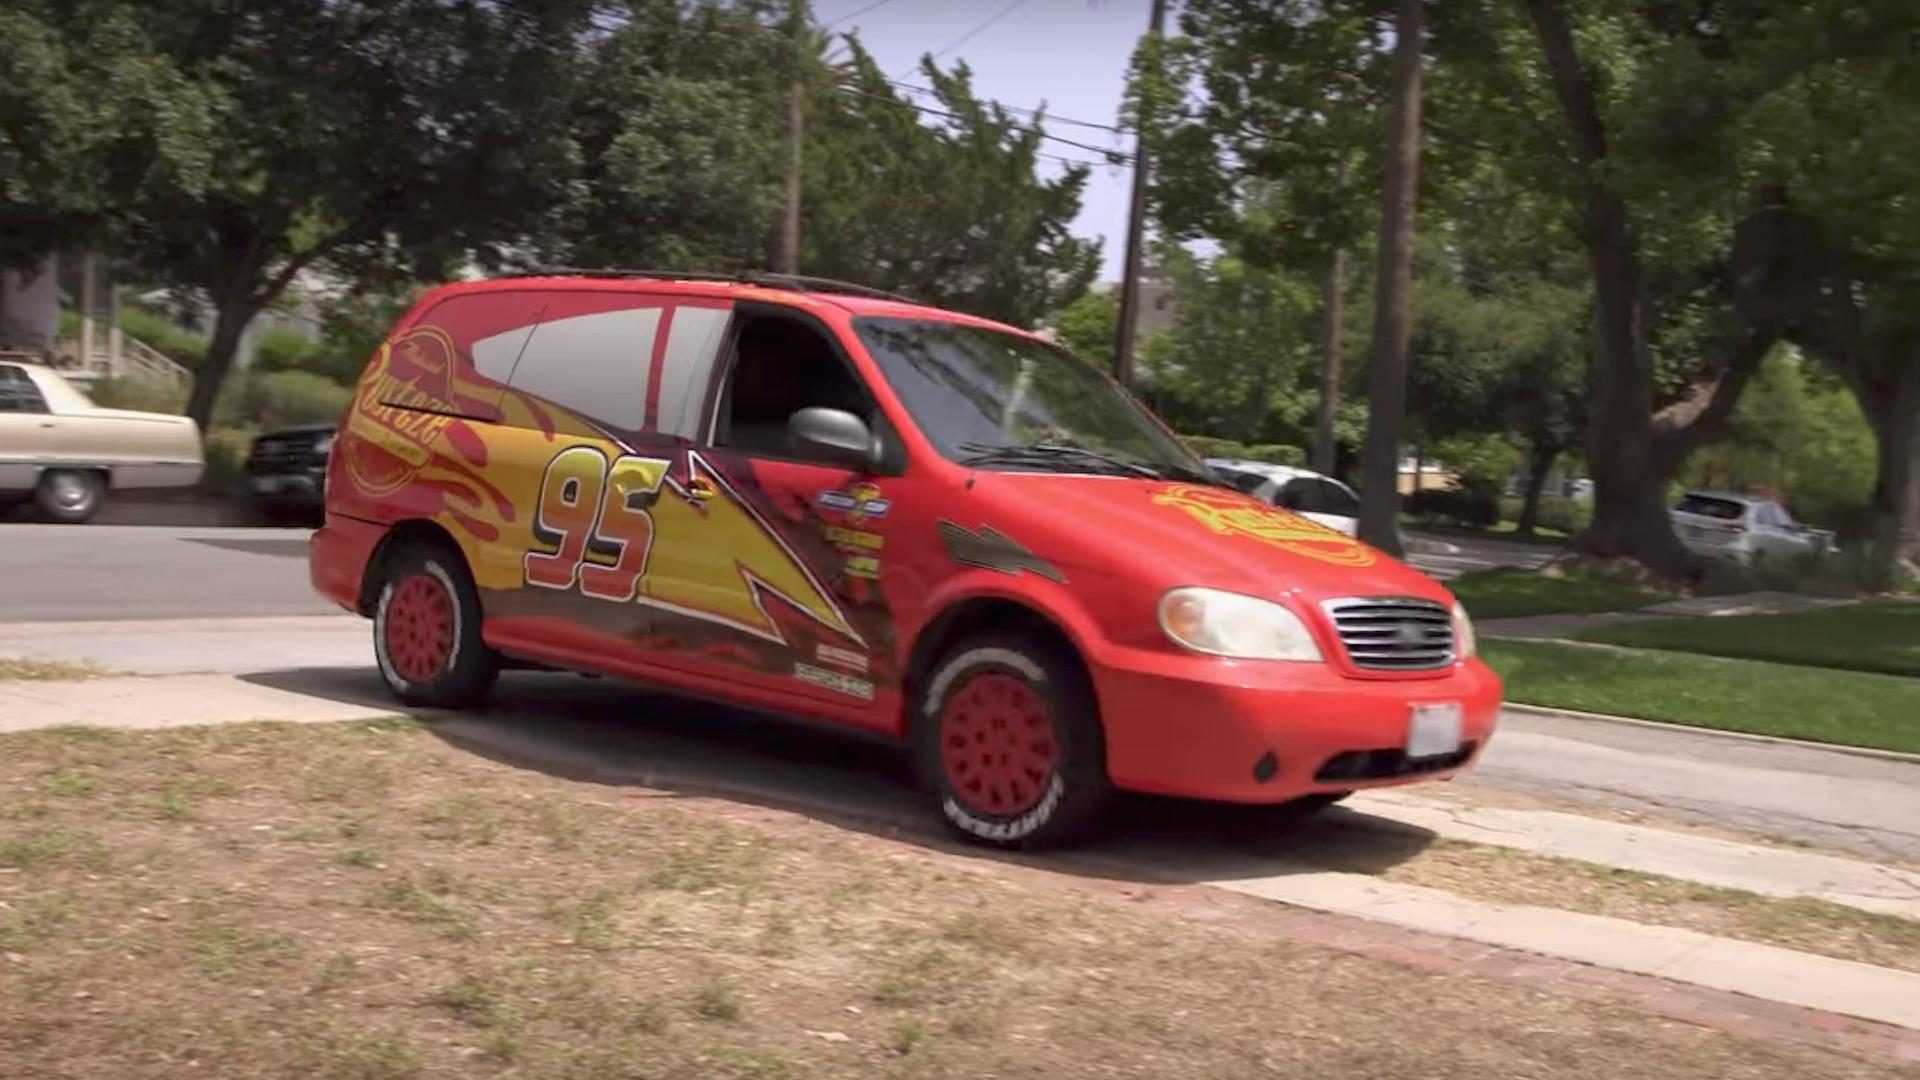 Disney Pimped One Mom S Minivan To Look Like Lightning Mcqueen